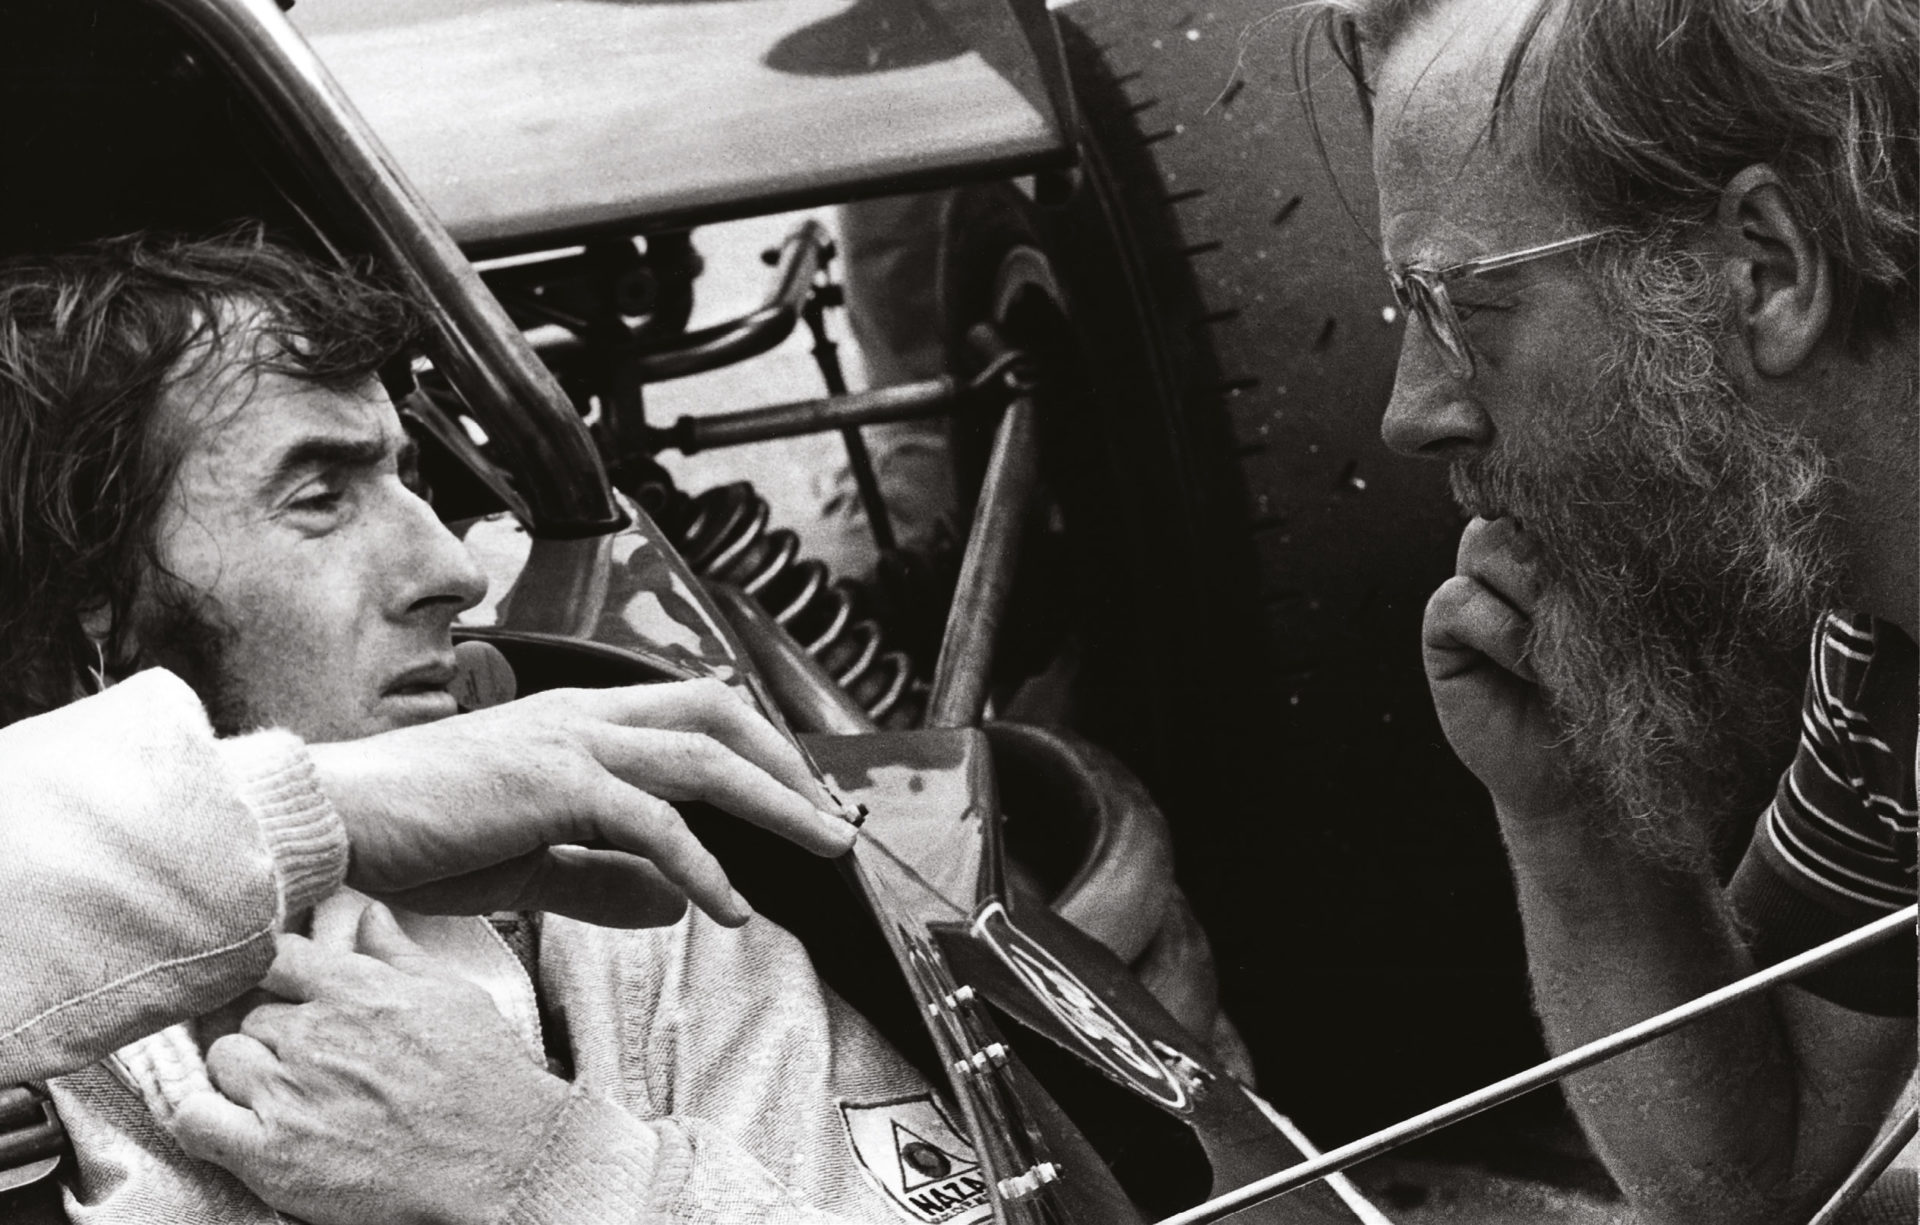 There was mutual respect between Sir Jackie Stewart and Denis Jenkinson, but there were also very public disagreements